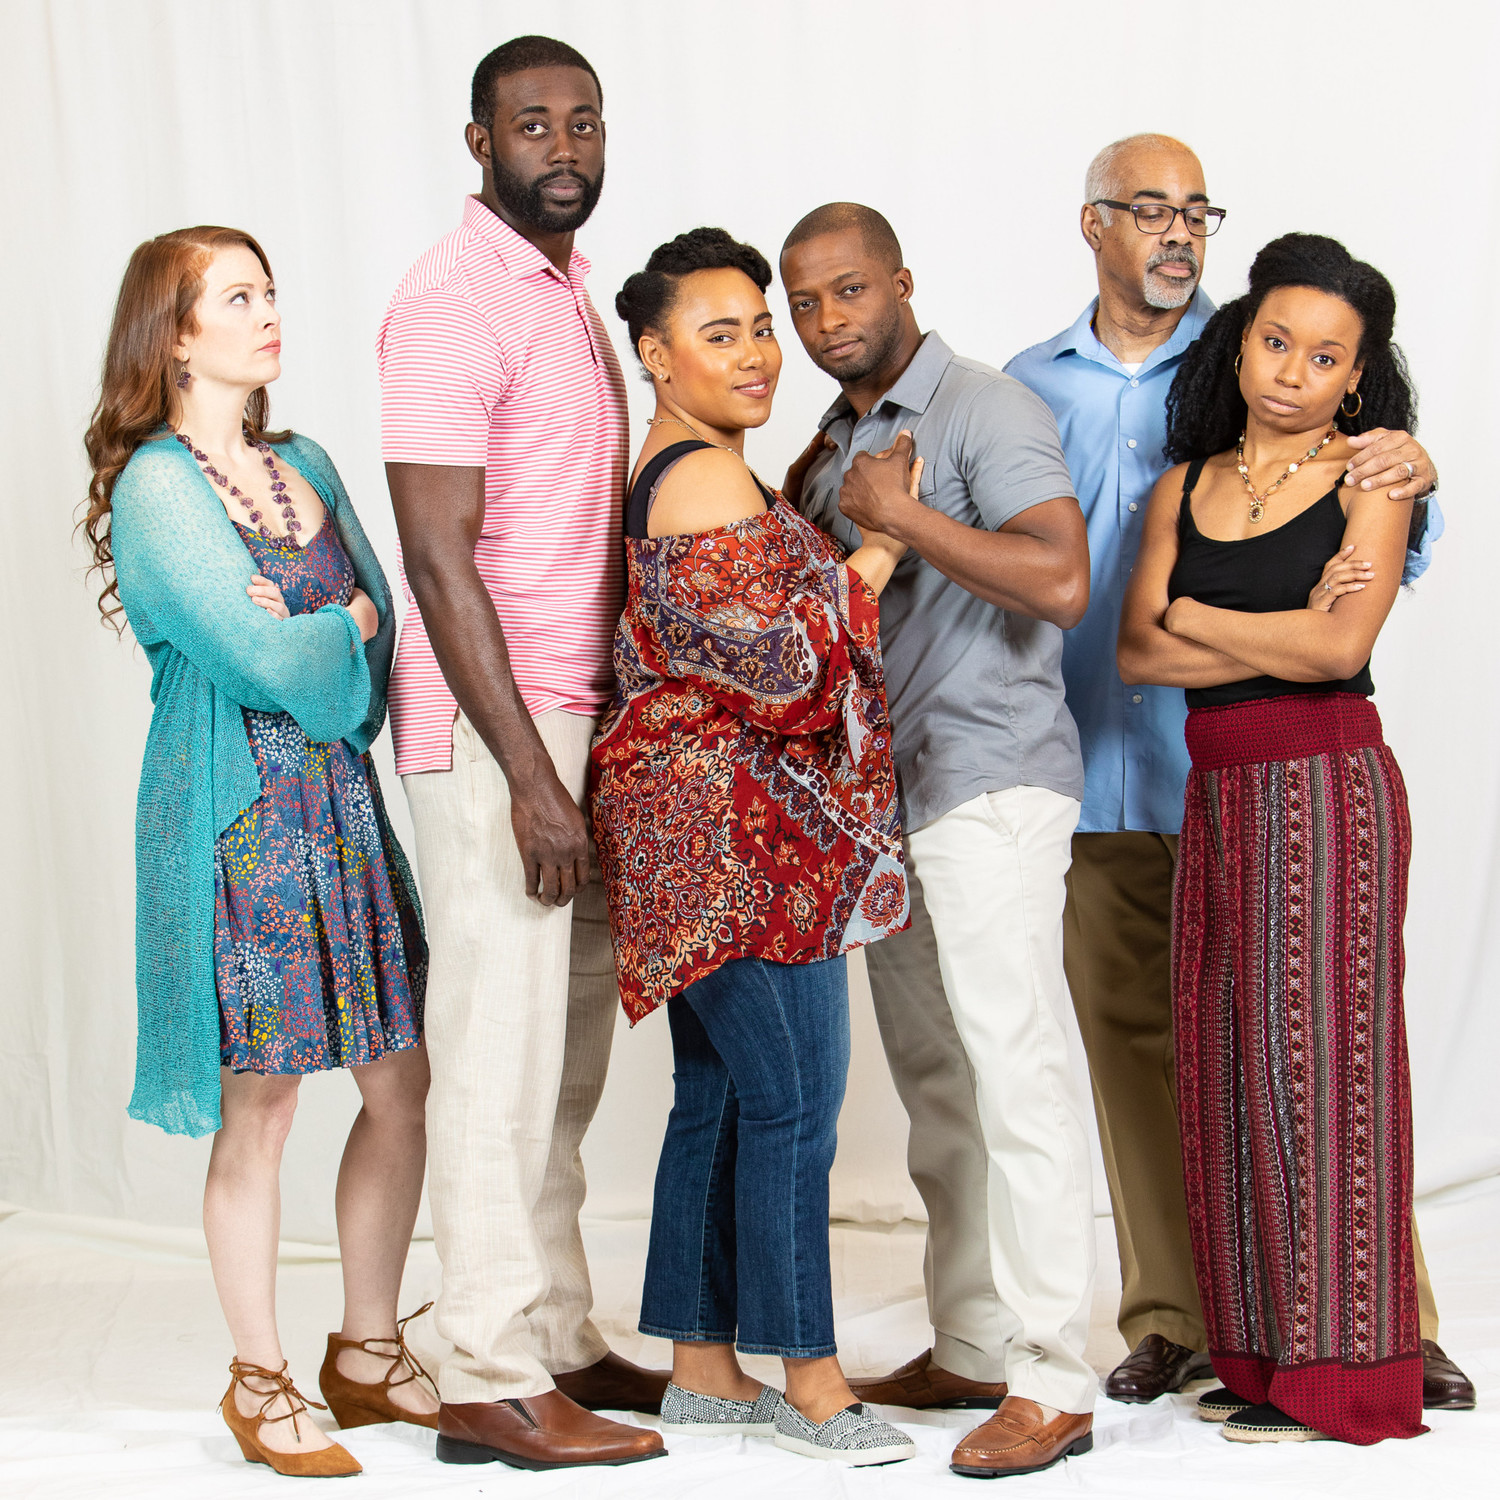 BWW Review: STICK FLY at Meadow Brook Theatre Evokes Thoughtful Discussions of Race, Class, and More